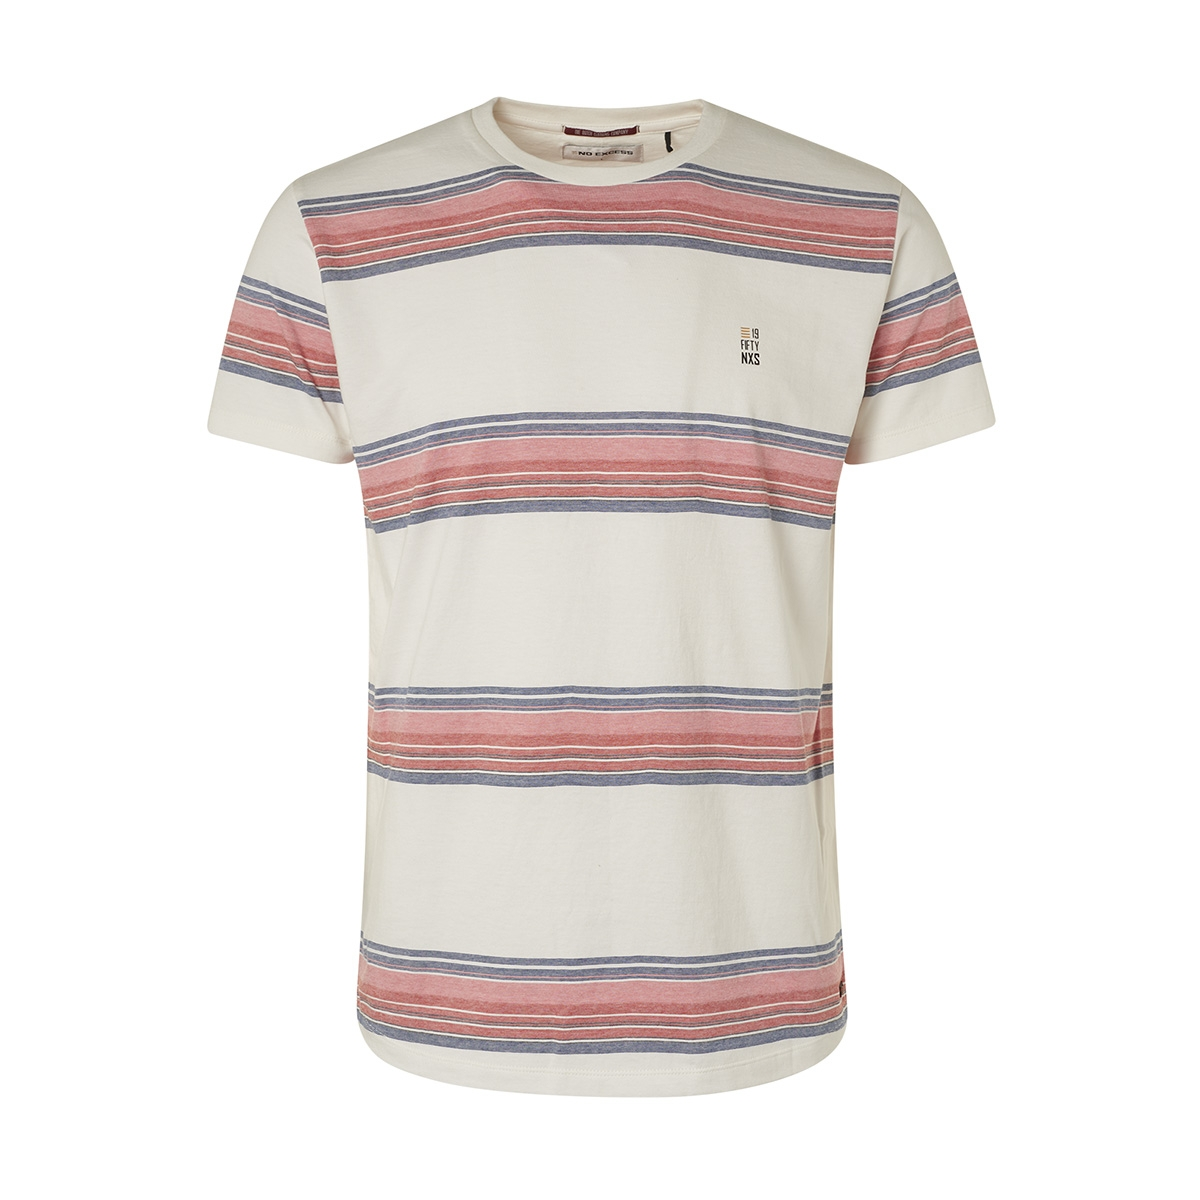 striped jersey crewneck t shirt 95350256 no-excess t-shirt 011 offwhite